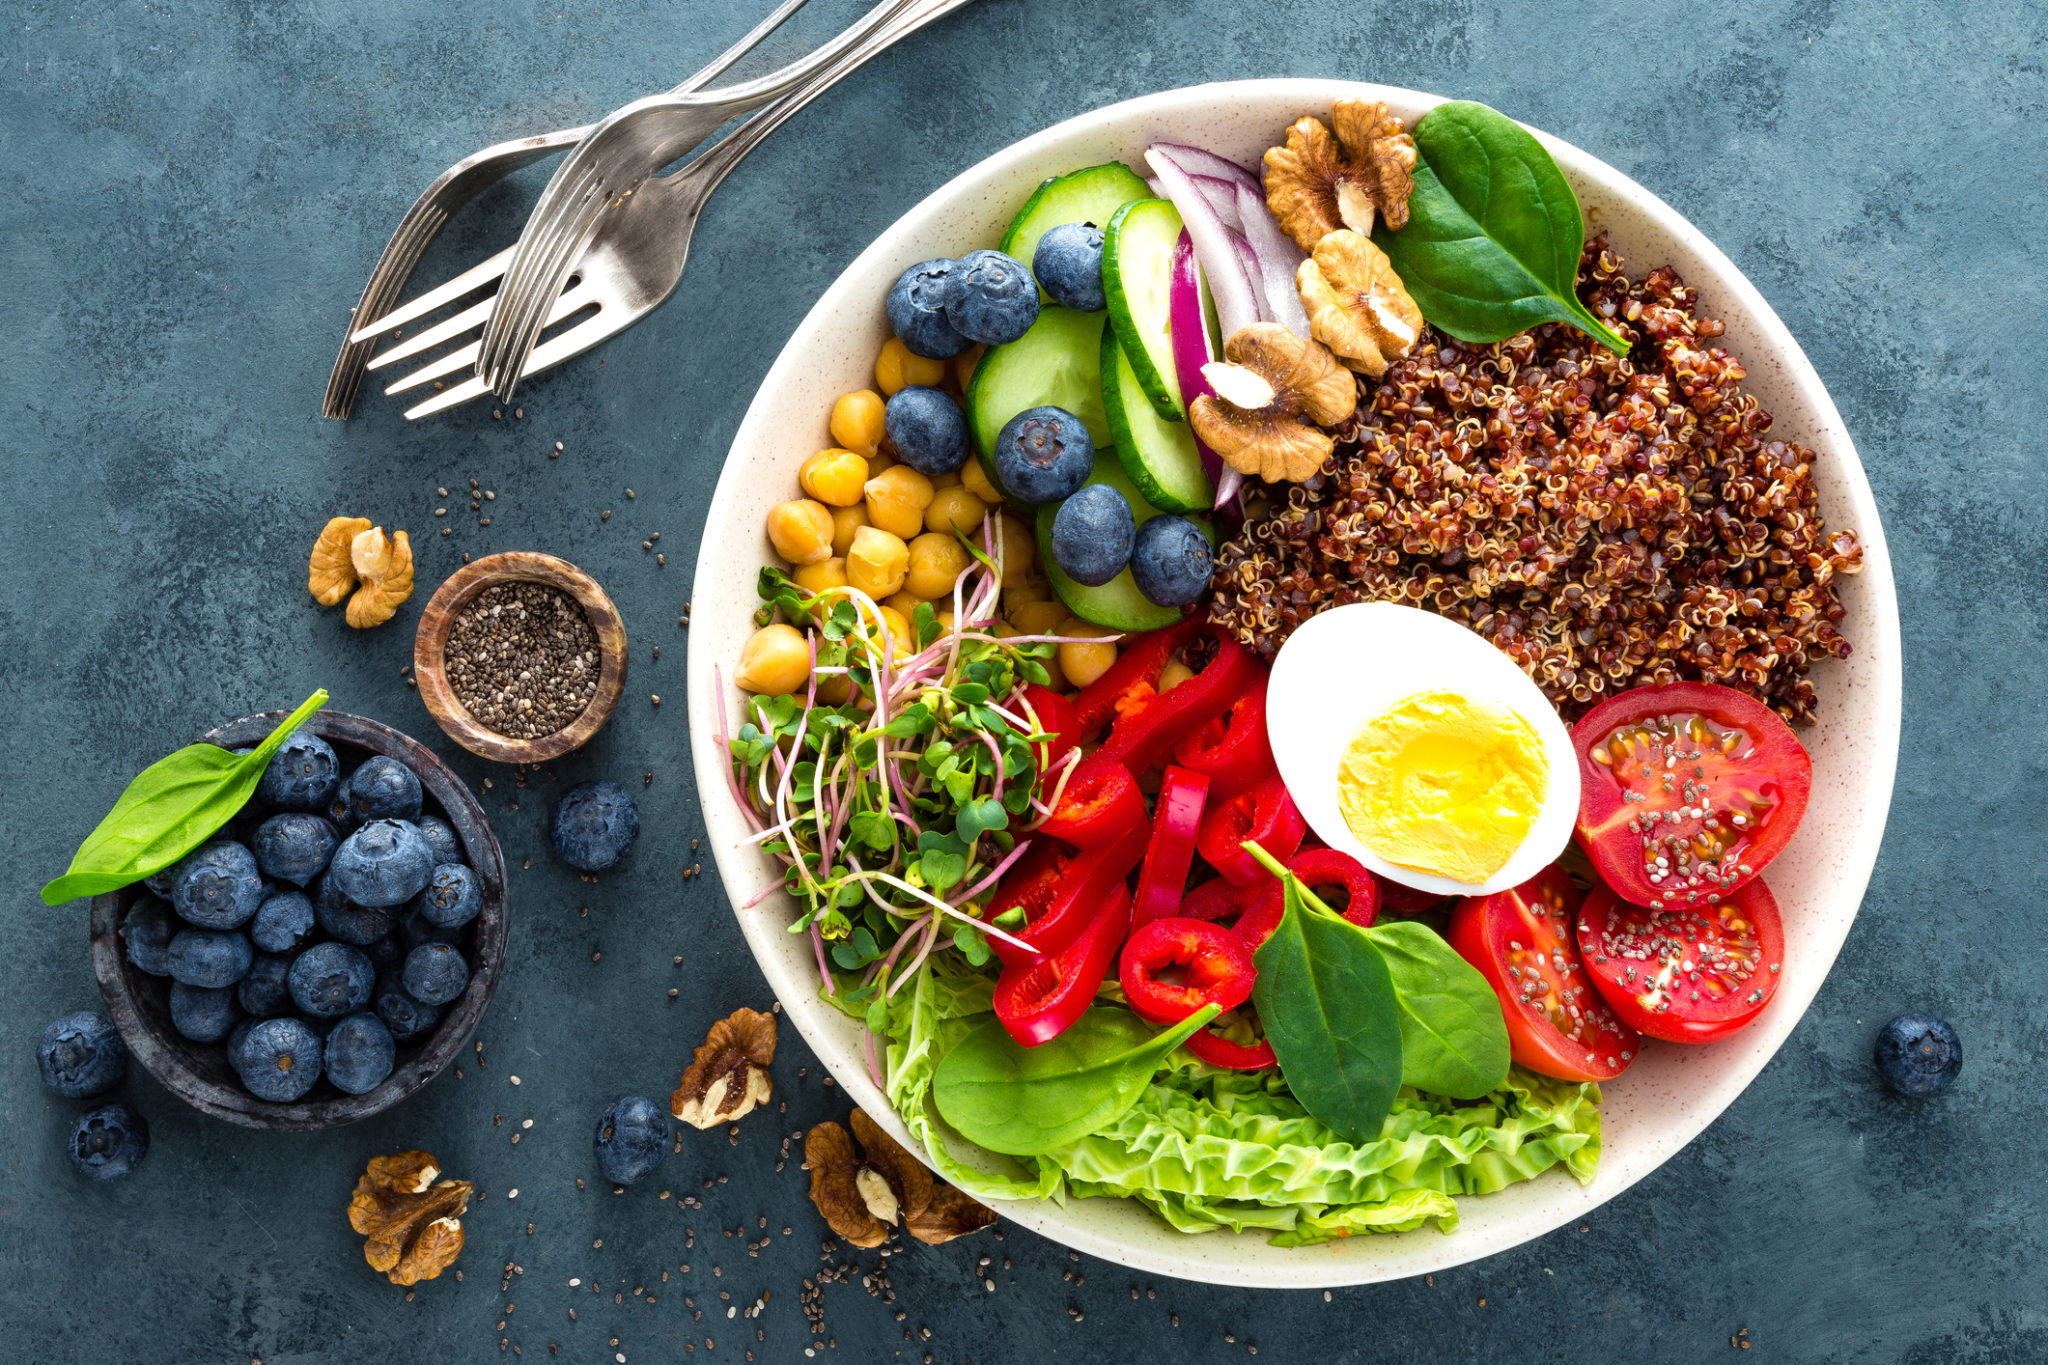 Buddha bowl dinner with boiled egg, chickpea, fresh tomato, sweet pepper, cucumber, savoy cabbage, red onion, green sprouts, spinach leaves, blueberry, walnuts, chia and quinoa. Healthy dish, lunch bowl. Detox diet. Balanced food. Top view